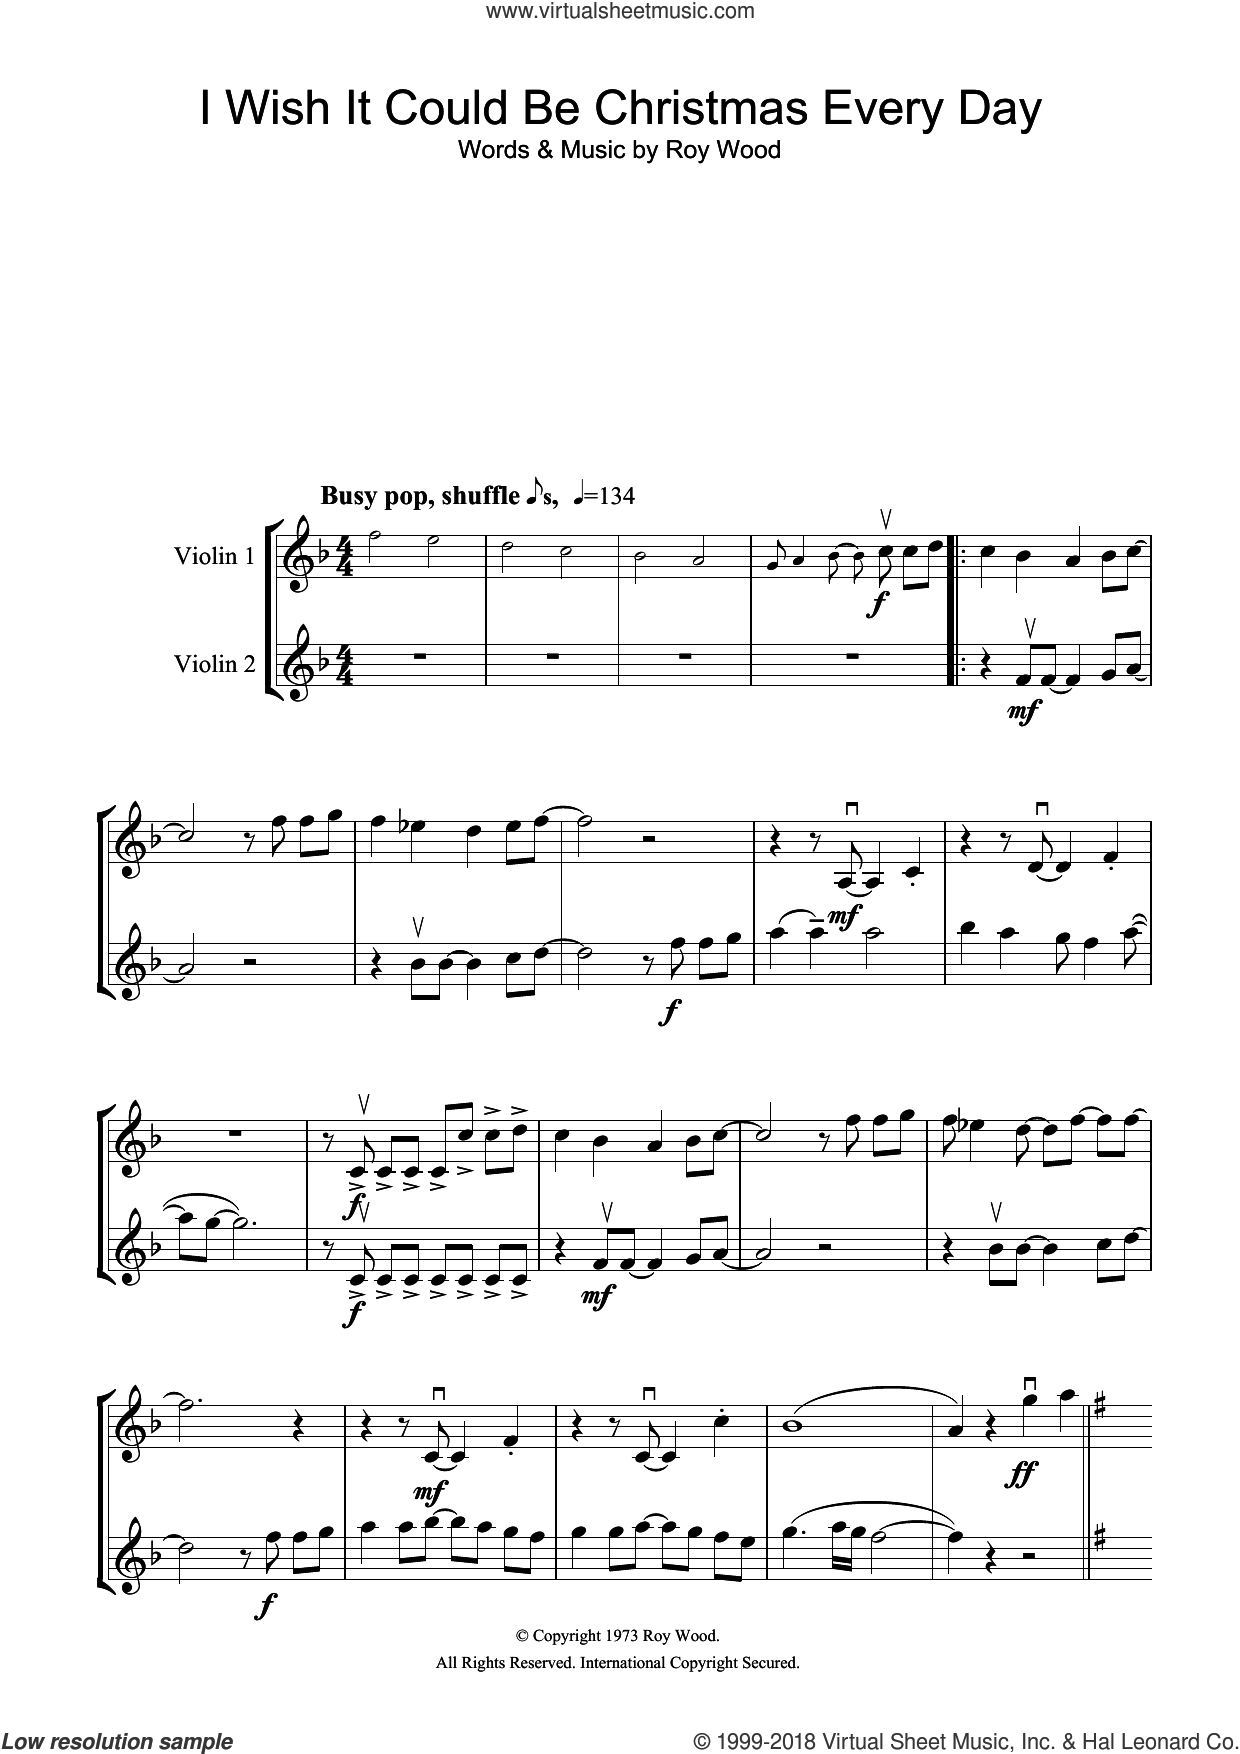 I Wish It Could Be Christmas Every Day sheet music for two violins (duets, violin duets) by Wizzard and Roy Wood, intermediate skill level